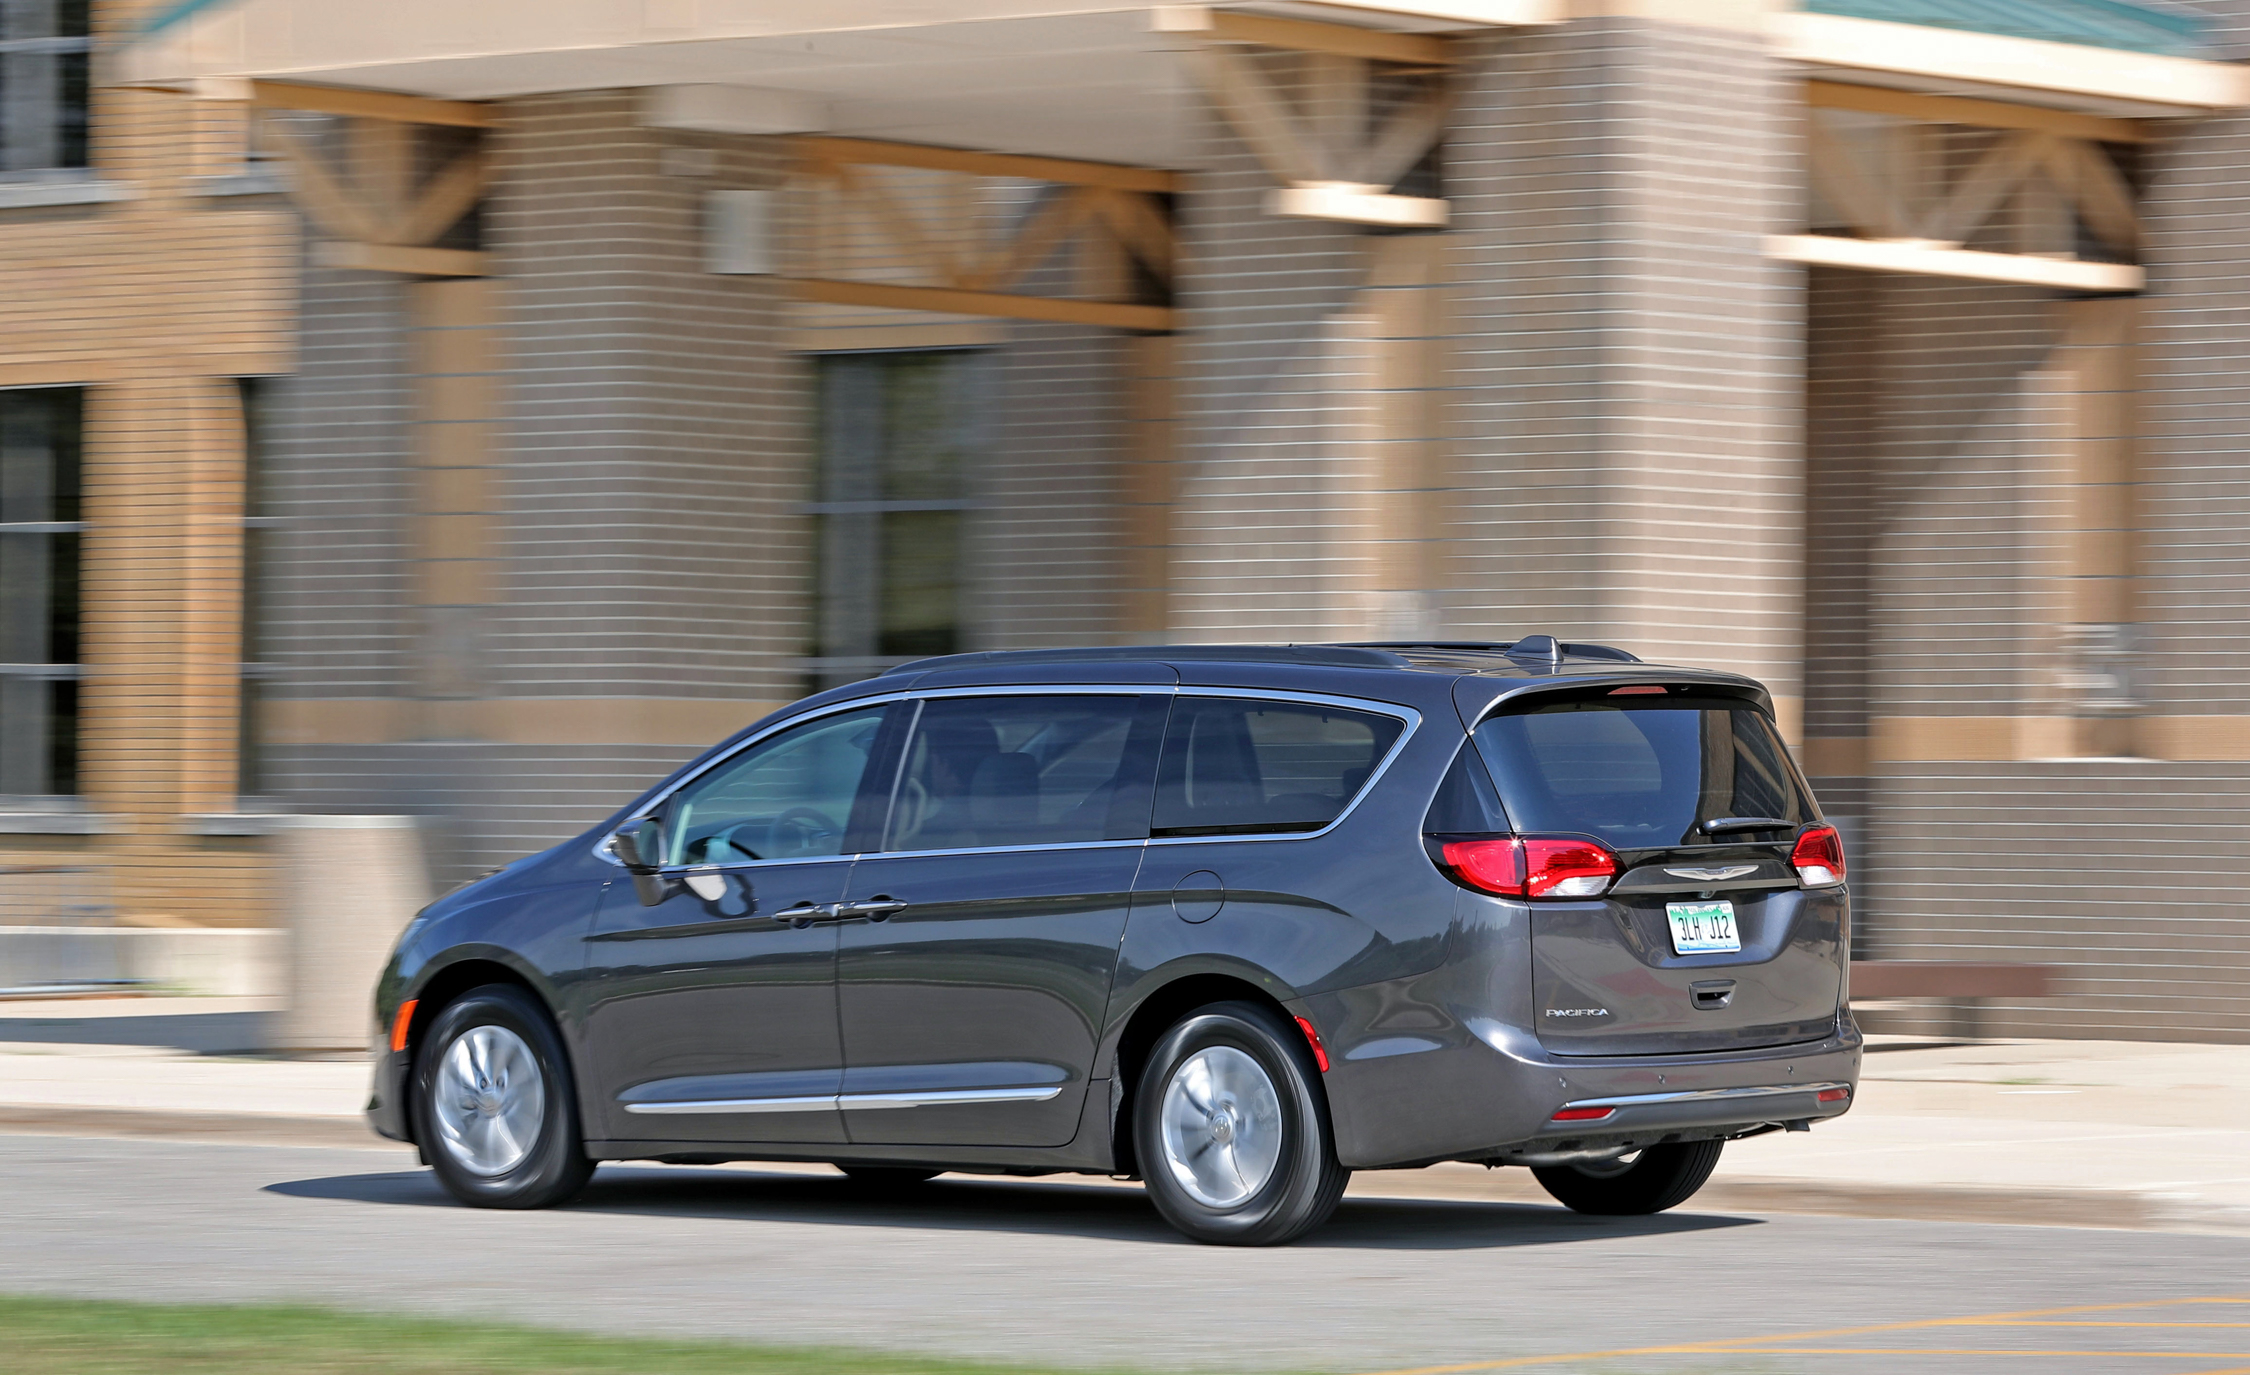 2017 Chrysler Pacifica Test Drive Rear Side View (Photo 6 of 25)